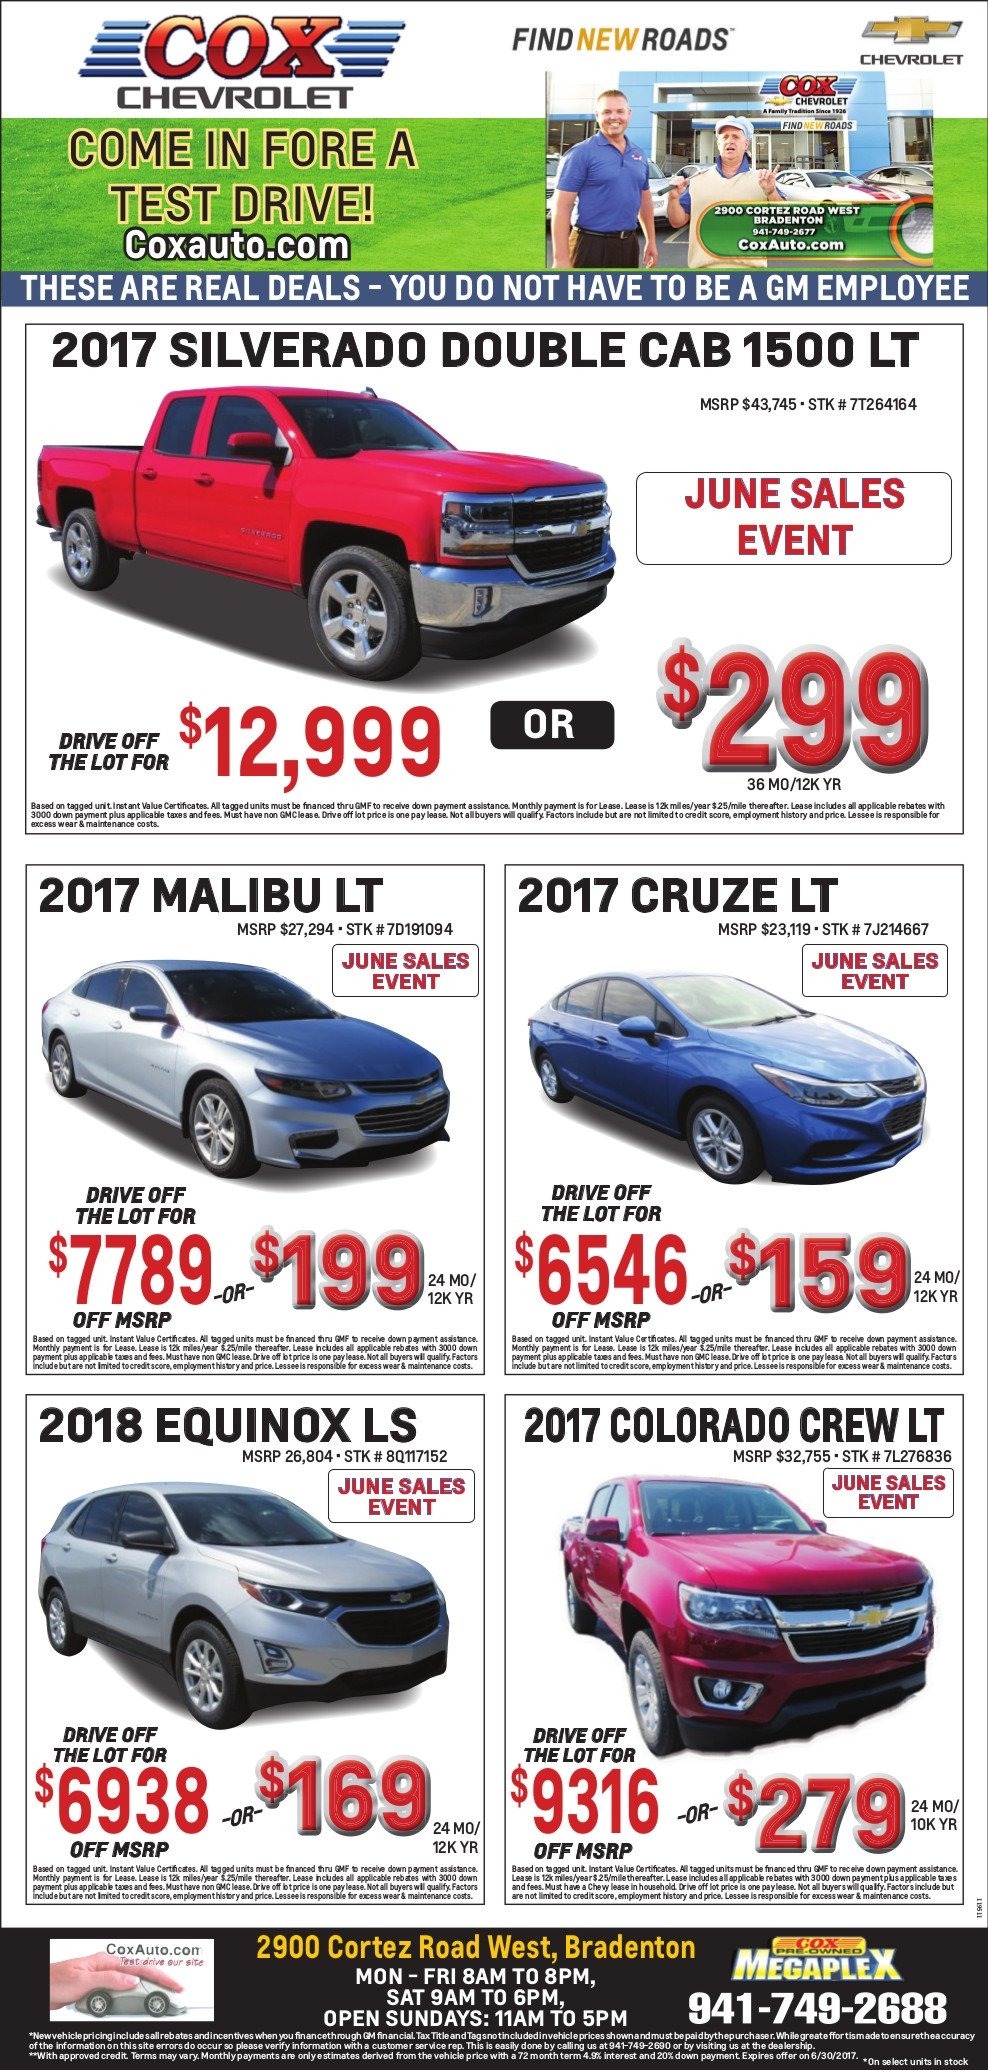 Cox Chevy Weekly specials